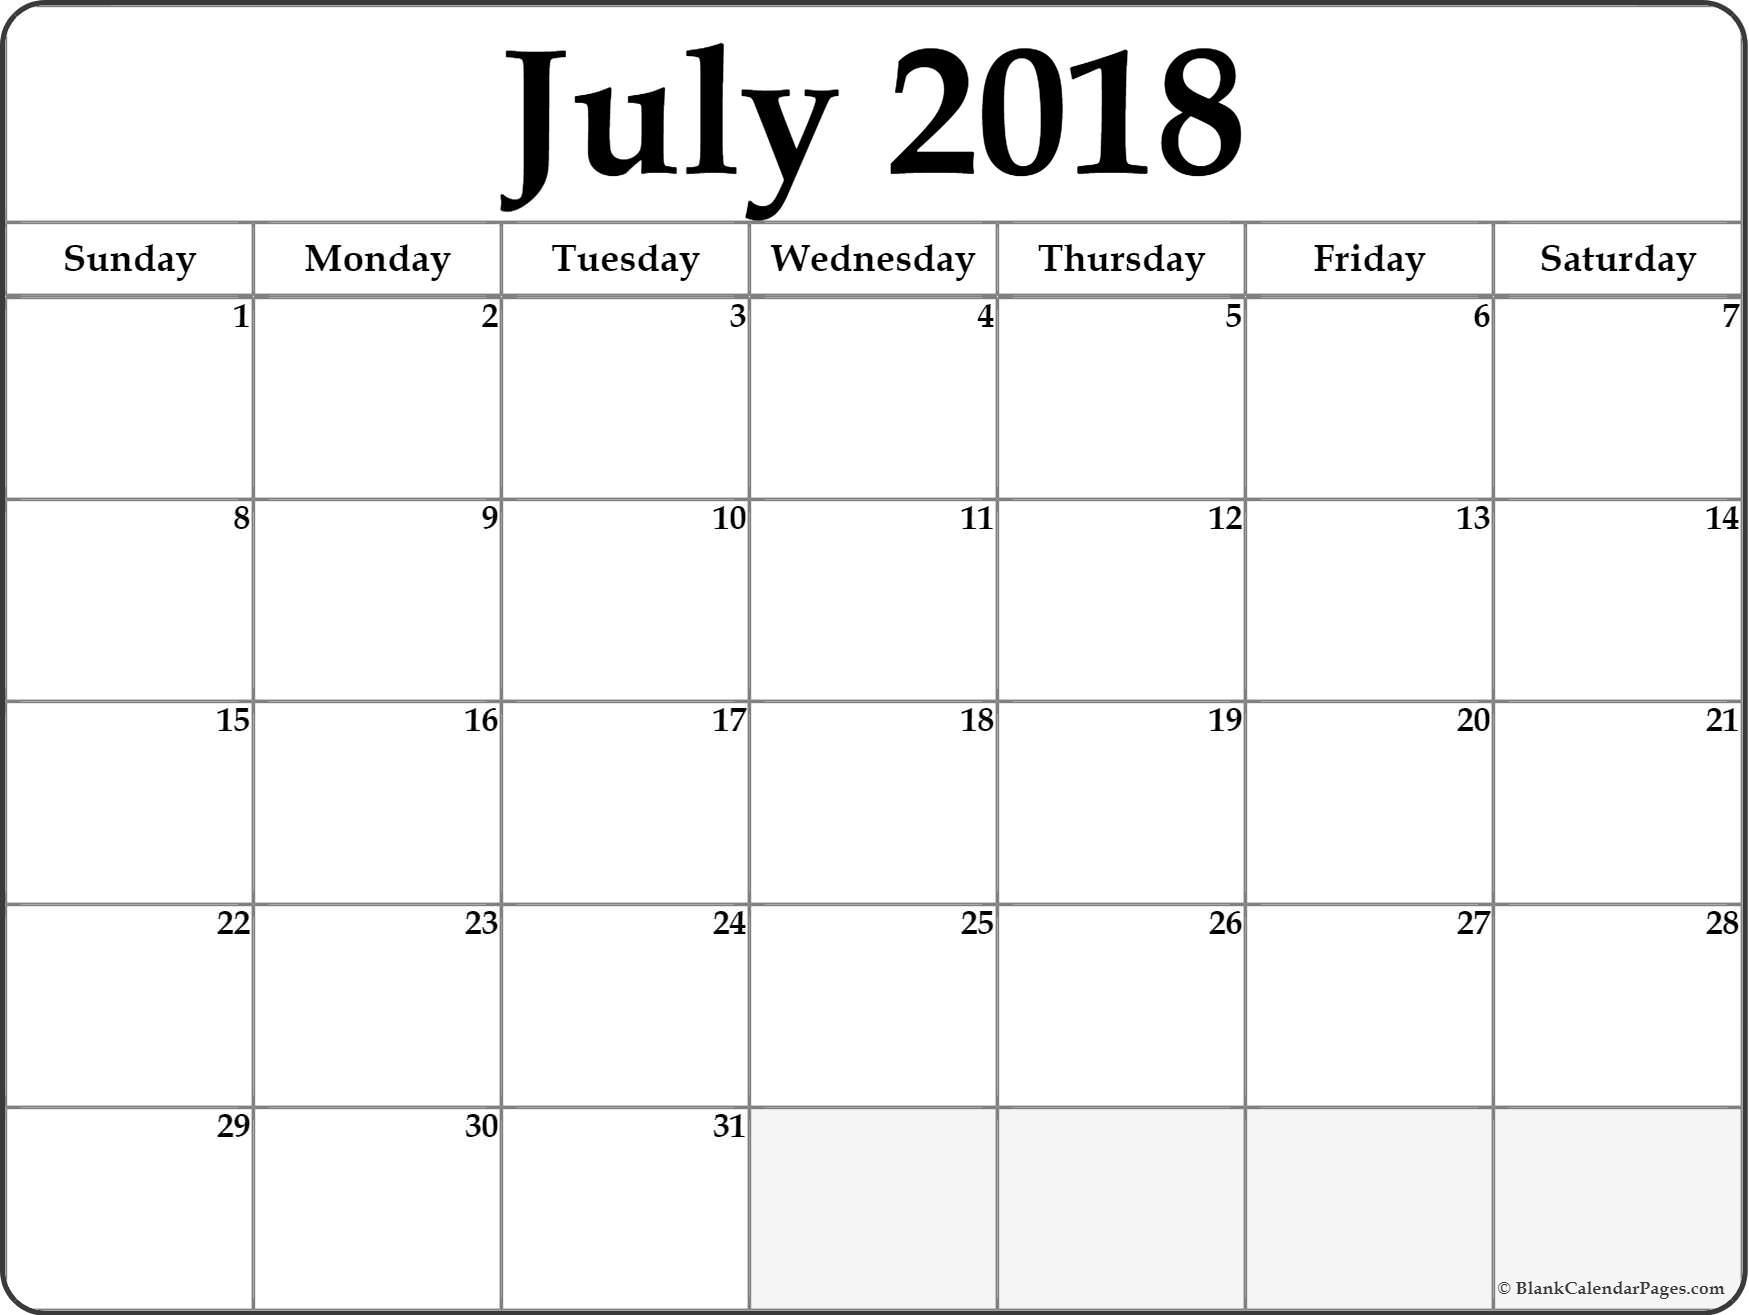 Pinmonthly Calendar On July Calendar 2018 | Printable Calendar throughout Blank Printable Mini Calendar